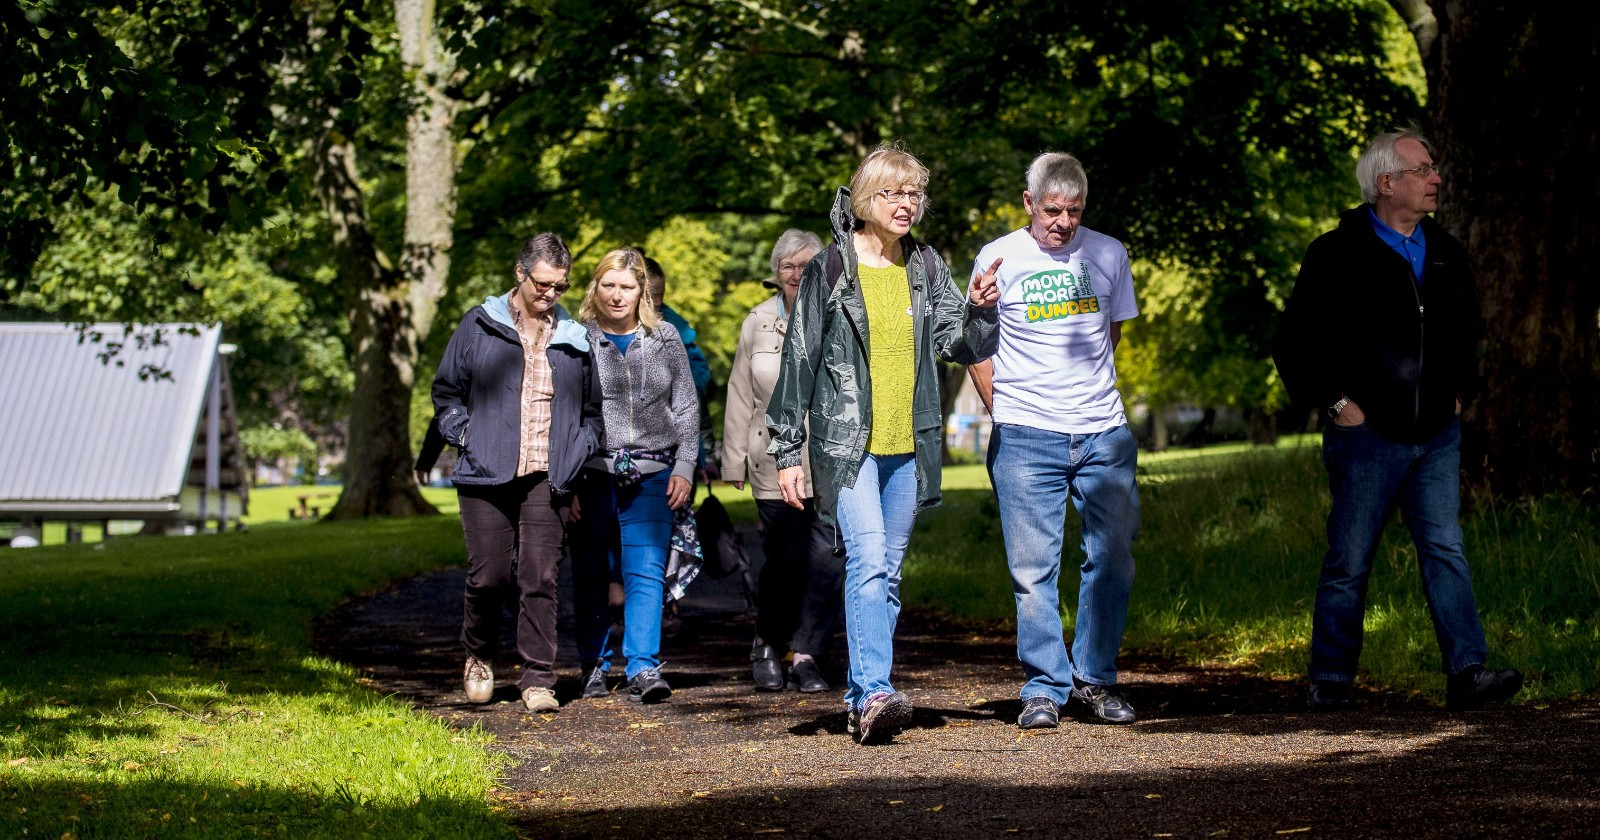 Some of our volunteers leading one of our local health walks